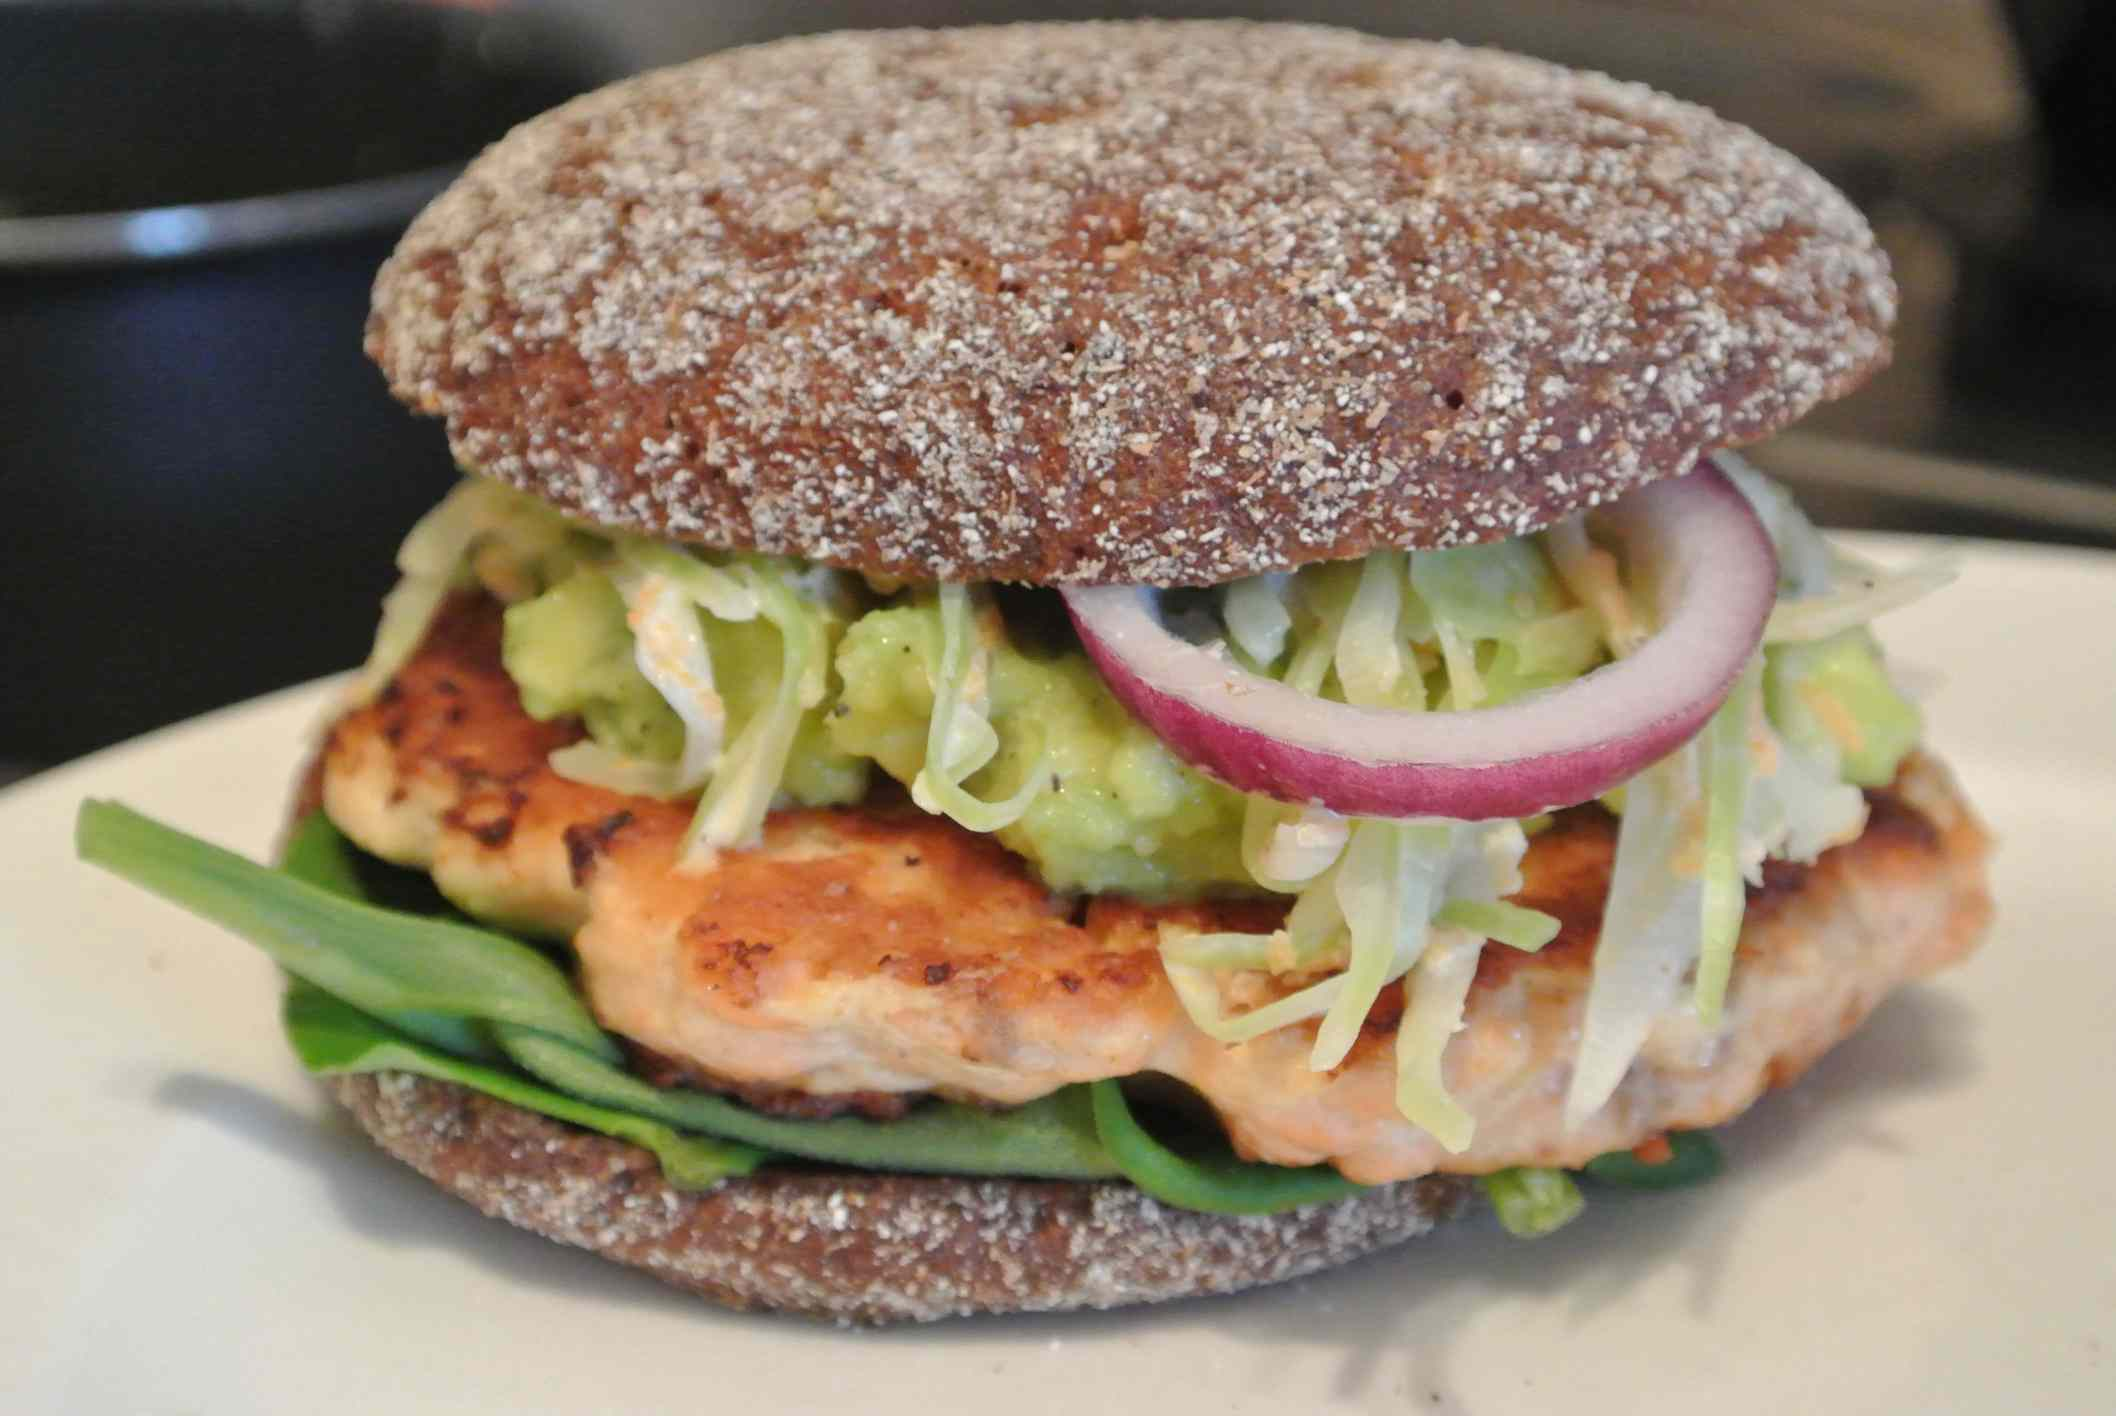 Salmon burger with coleslaw and avocado